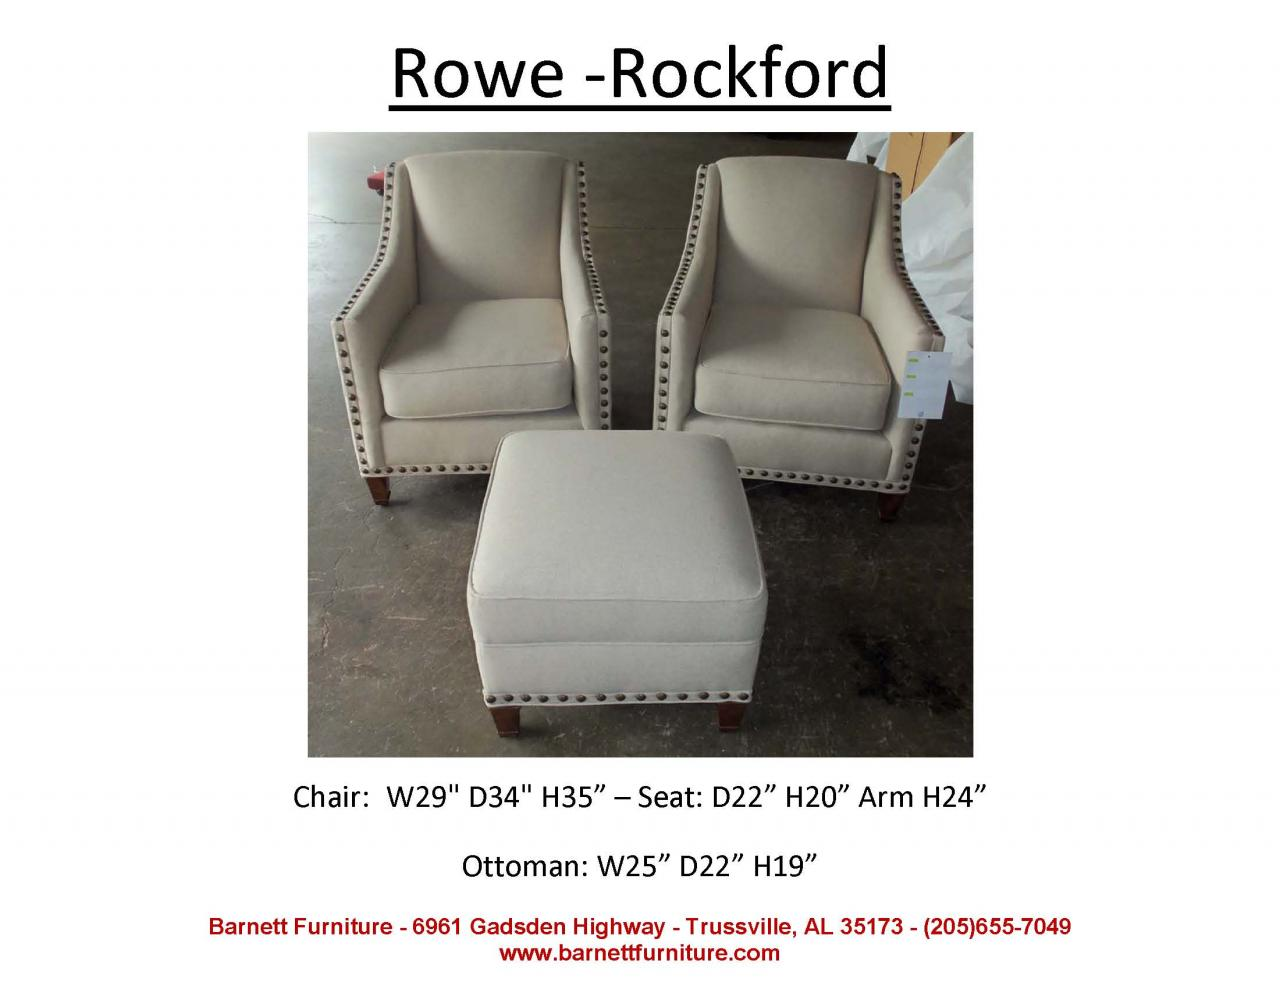 king hickory sofa winston bloom review rowe rockford chair